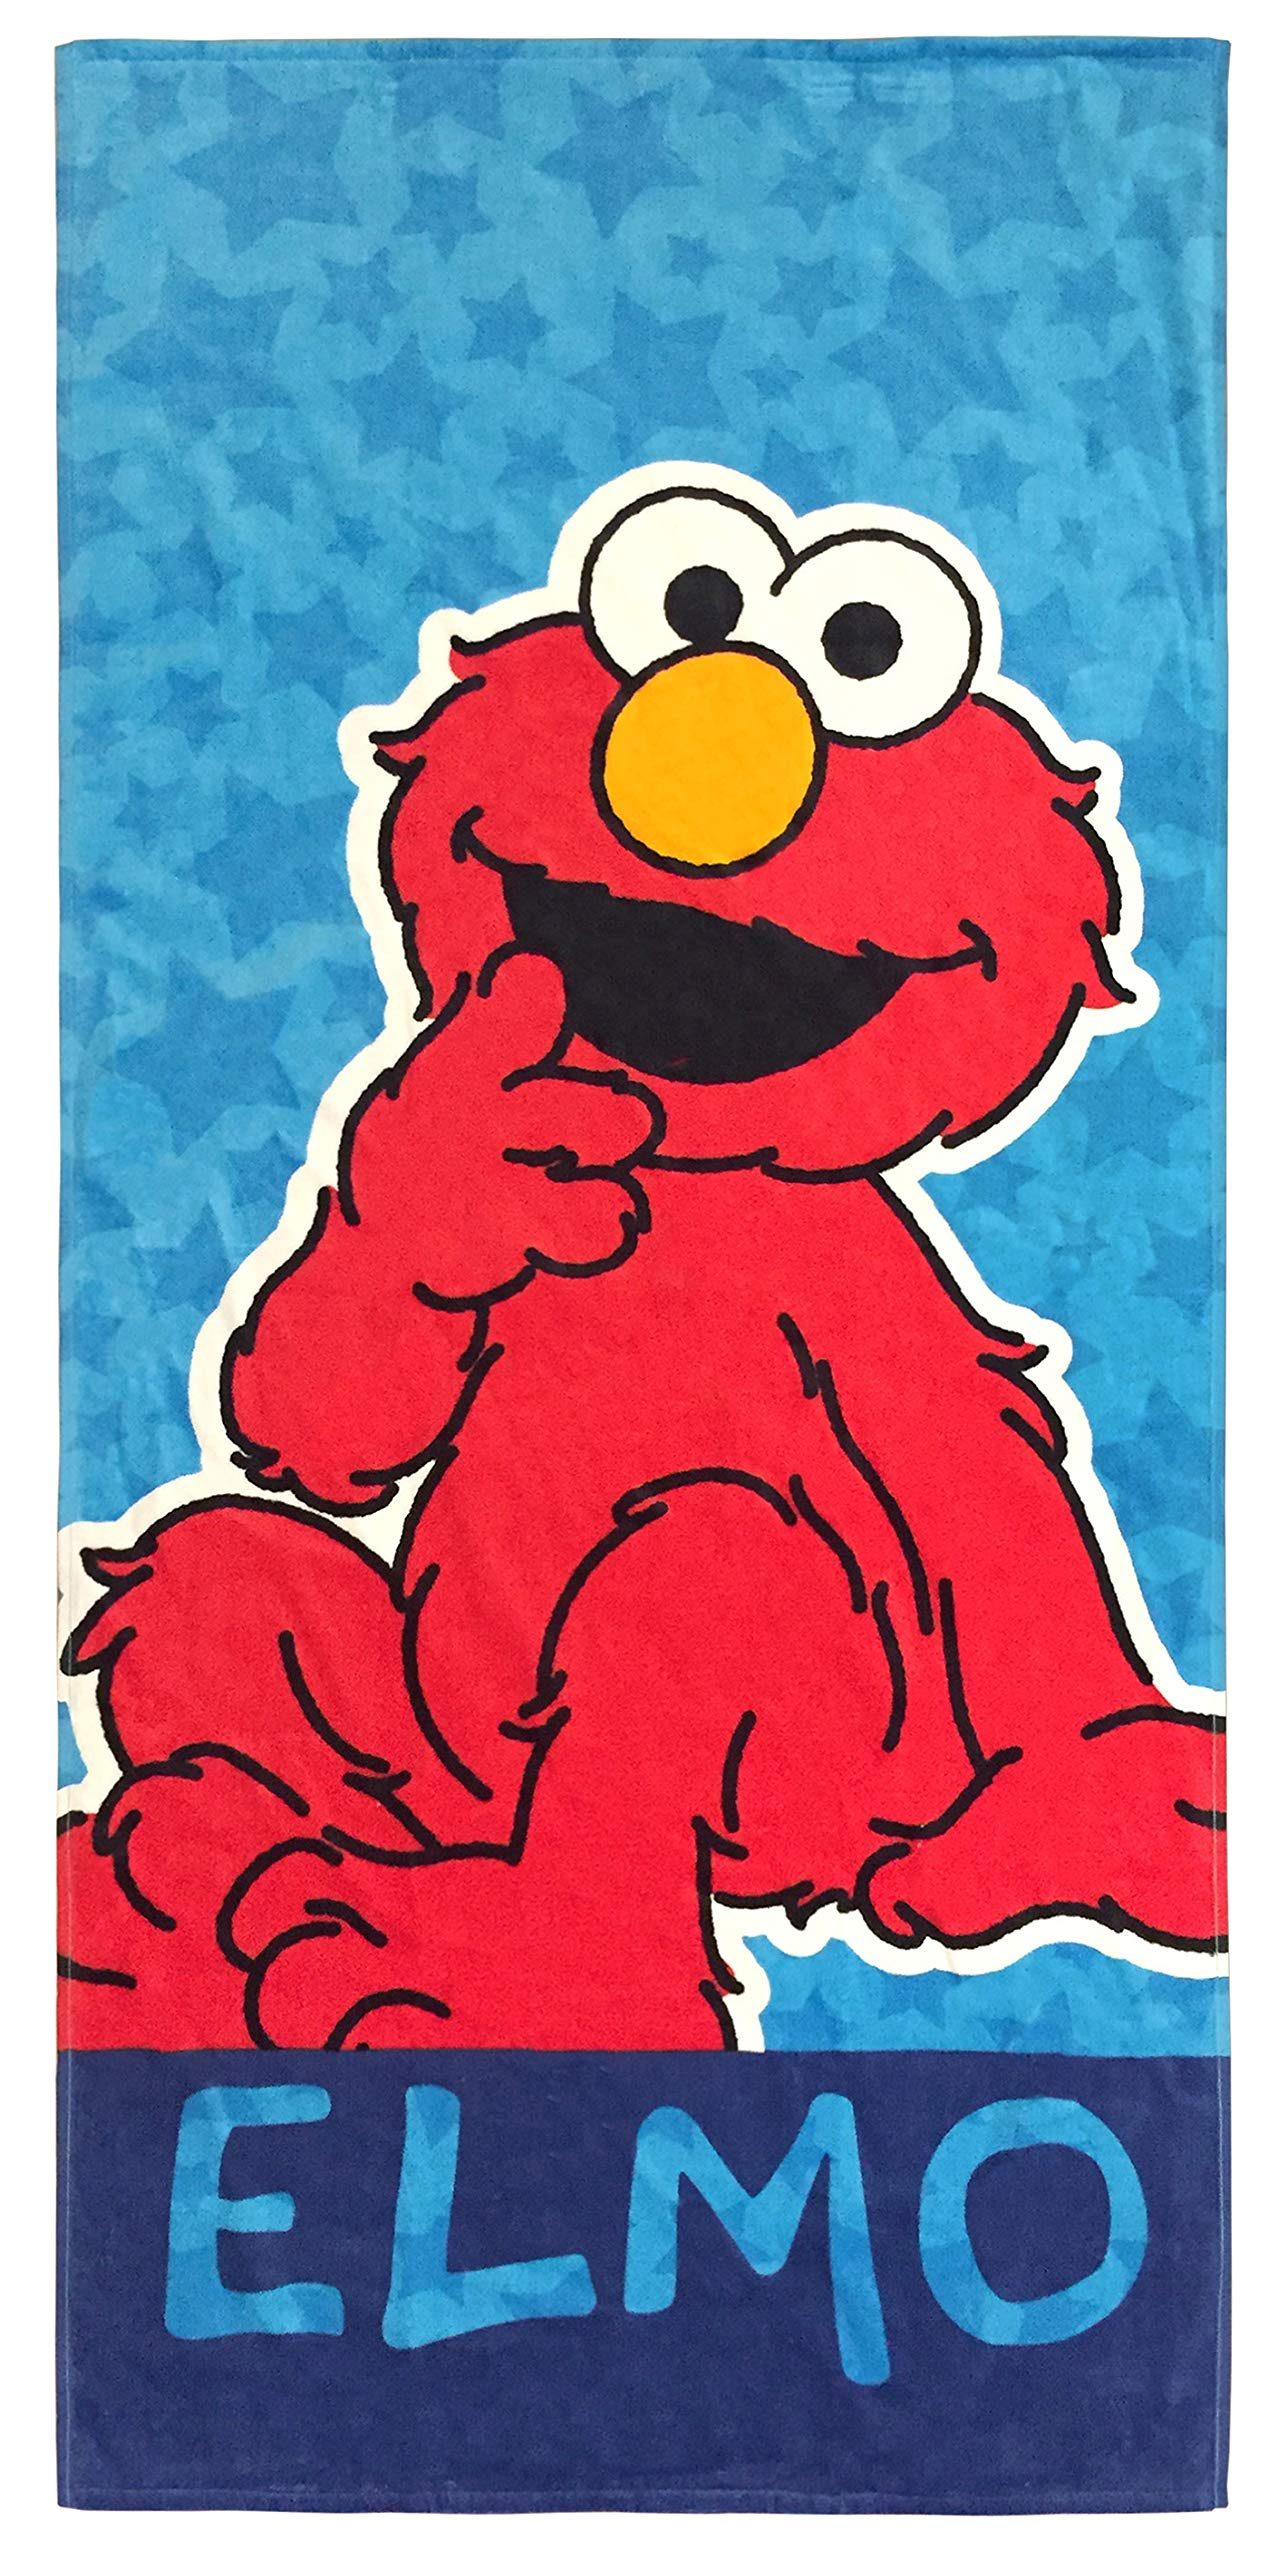 Jay Franco Sesame Street Kids Bath/Pool/Beach Towel - Featuring Elmo - Super Soft & Absorbent Fade Resistant Cotton Towel, Measures 28 inch x 58 inch (Official Sesame Street Product) by Jay Franco